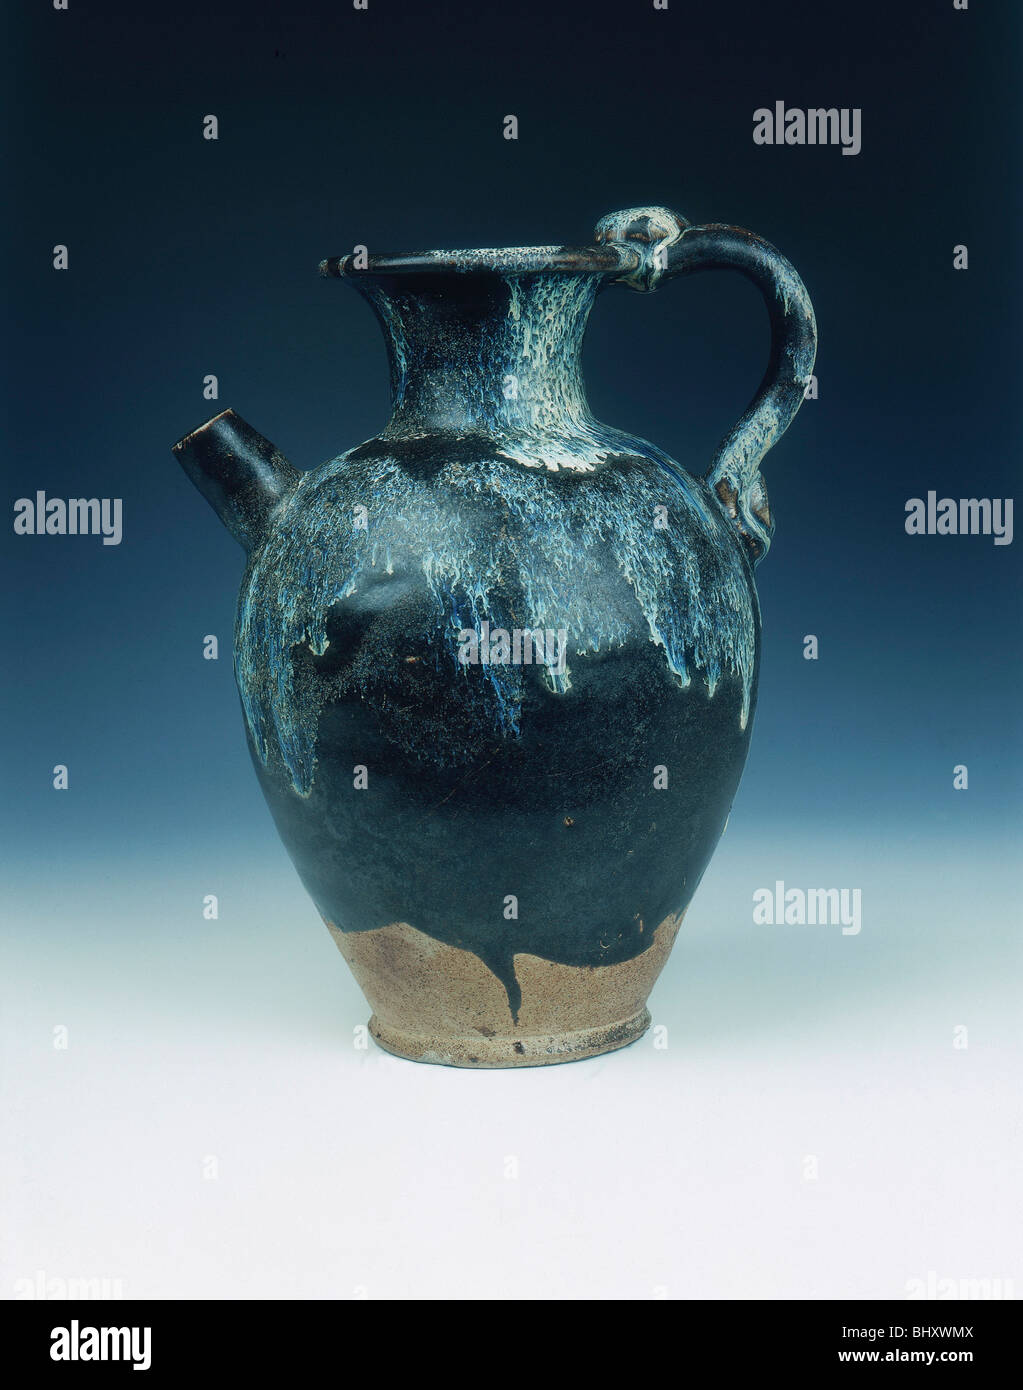 Black glazed ewer with blue phosphatic suffusions, Tang dynasty, China, 8th-9th century. - Stock Image